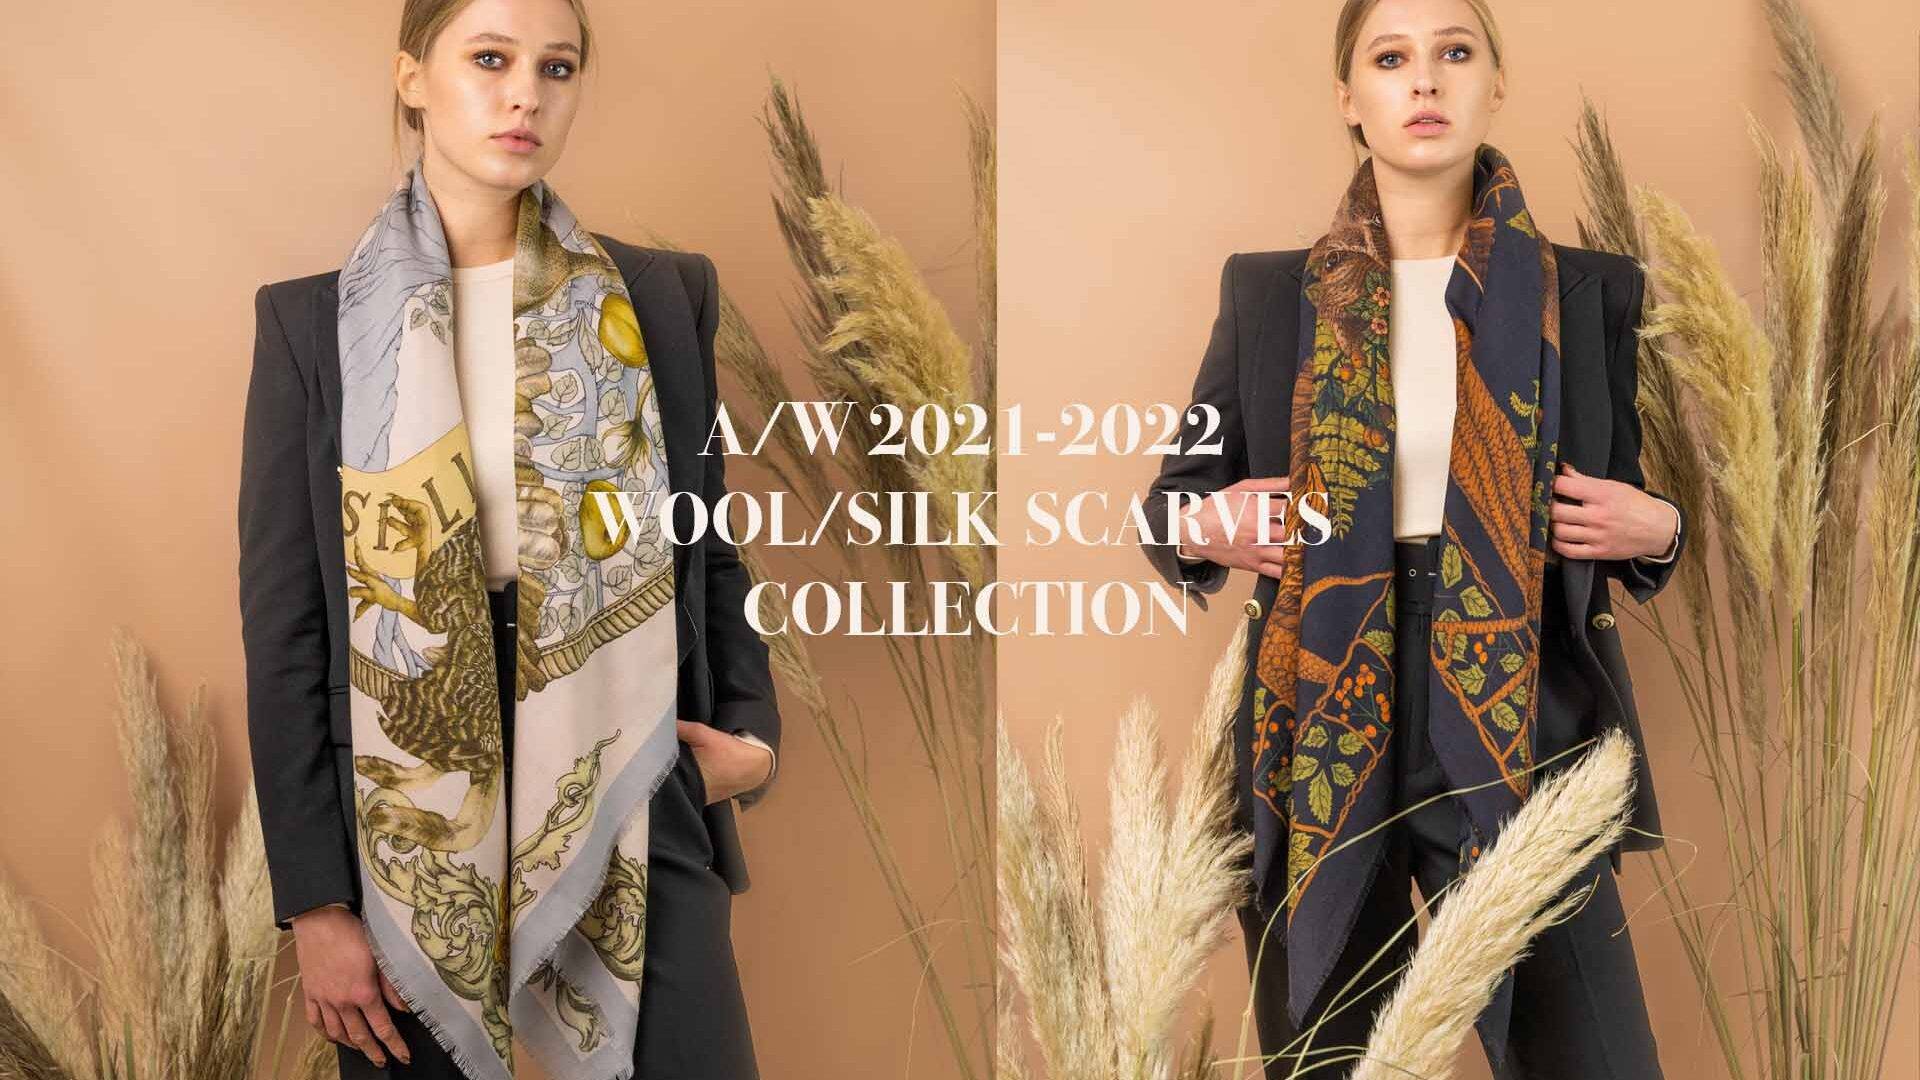 Wool Silk Scarves Collection AW 20021